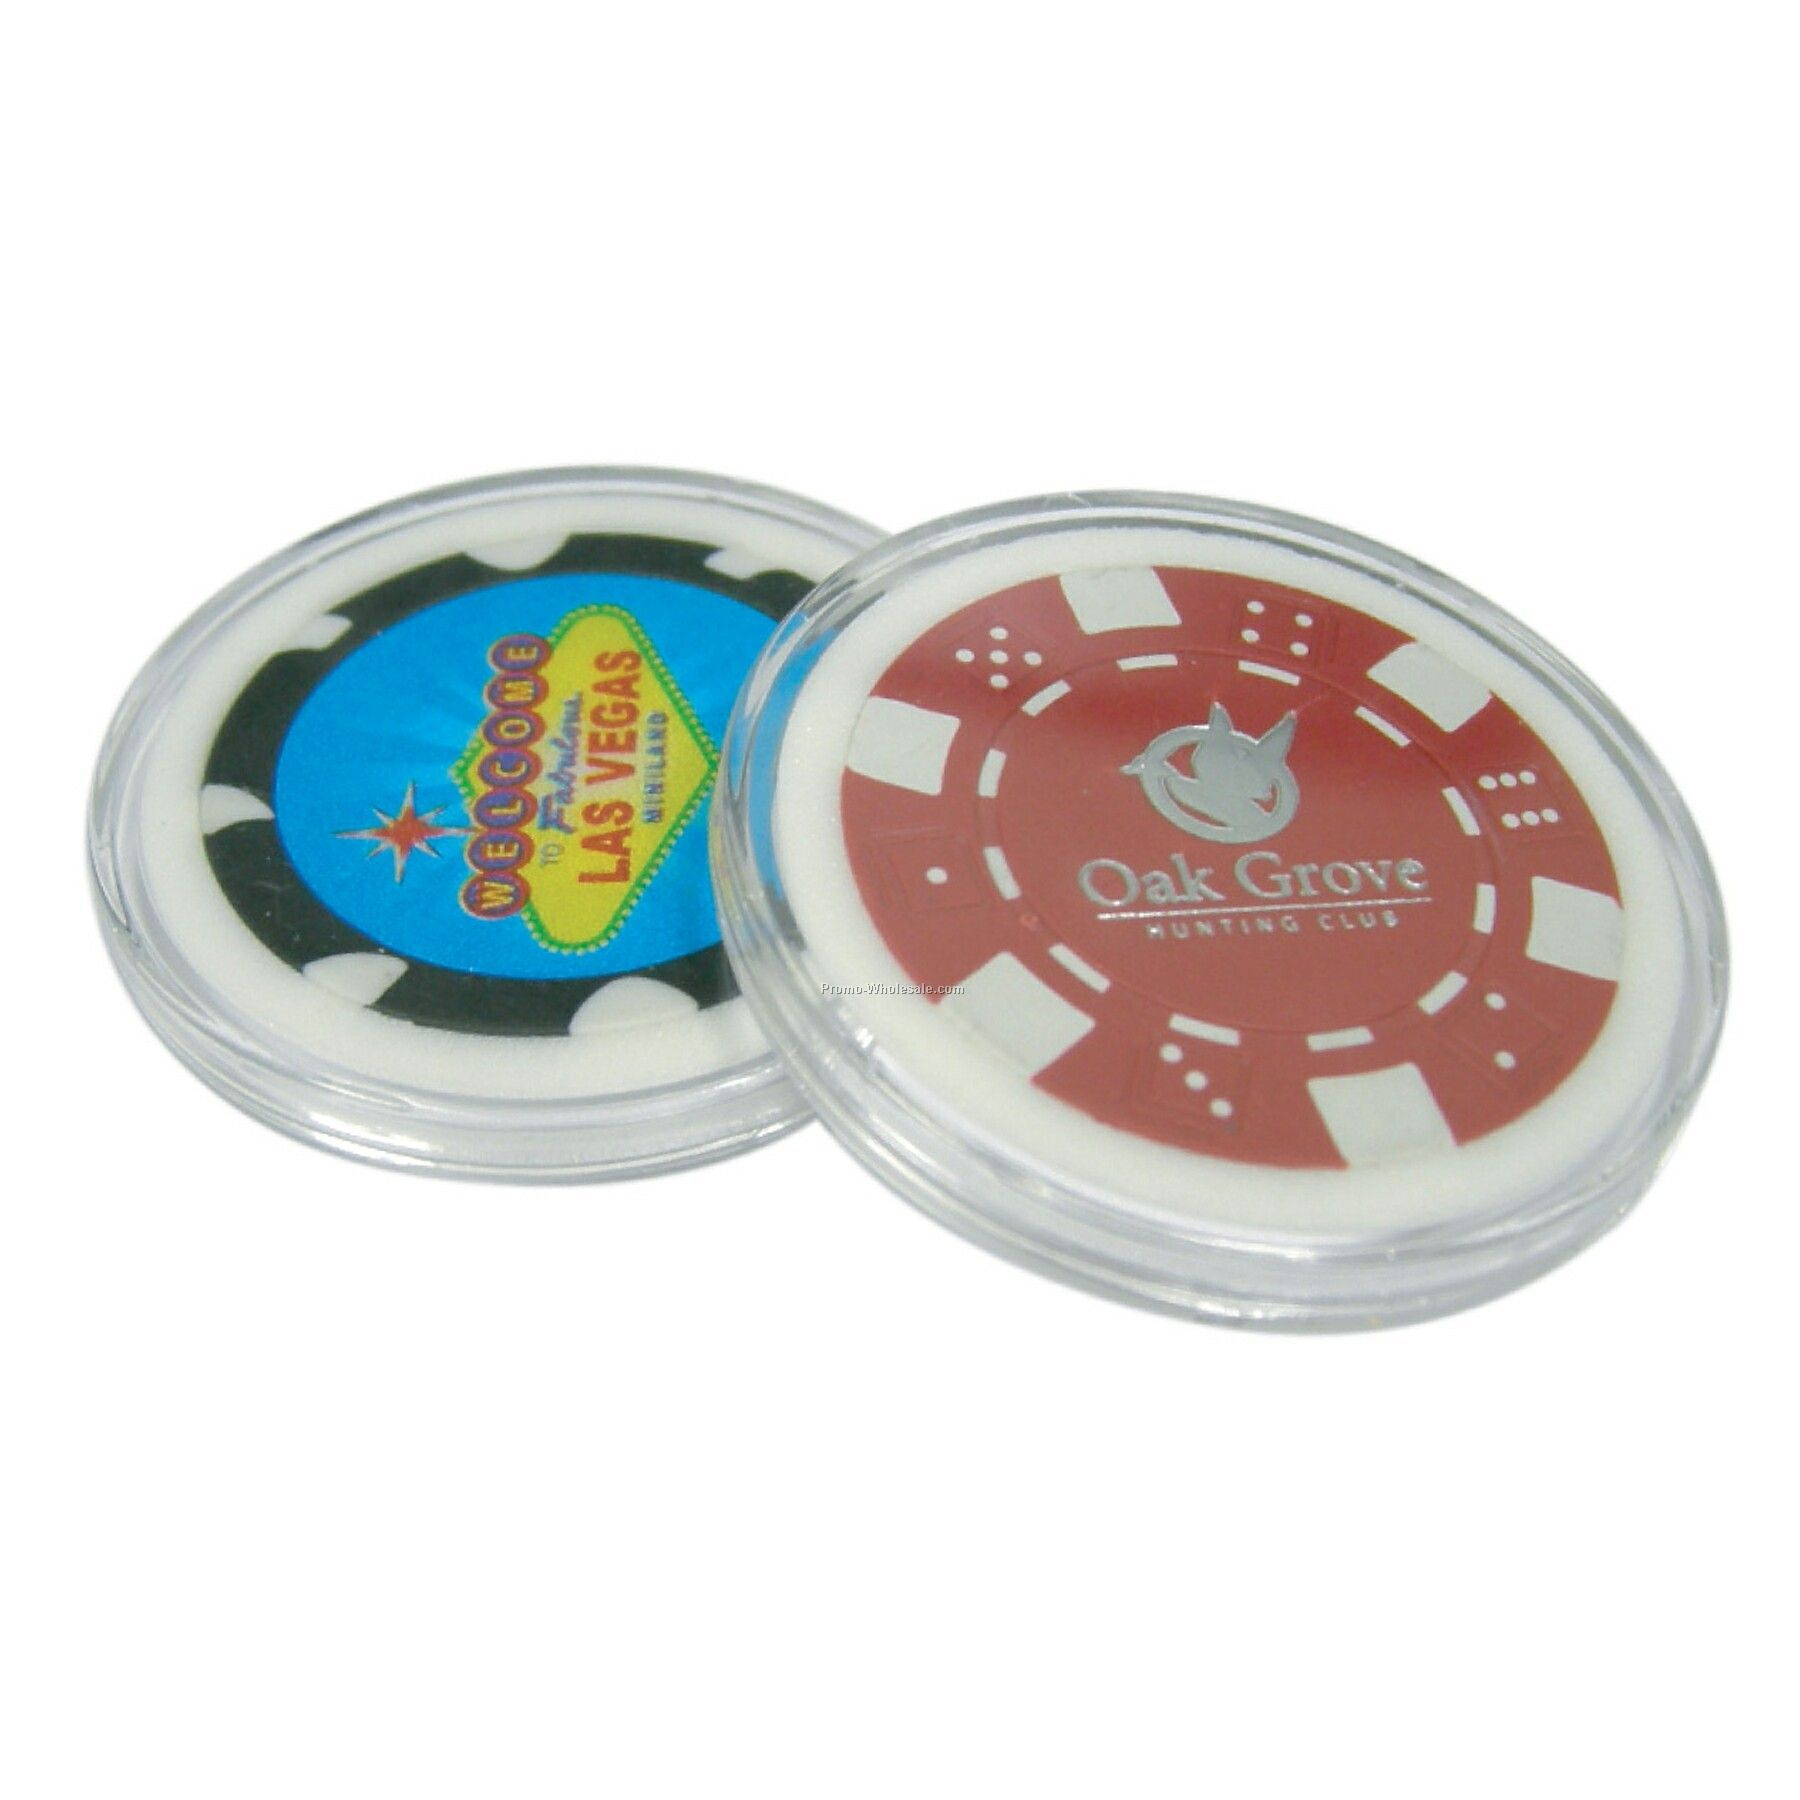 Clear Acrylic Poker Chip Case